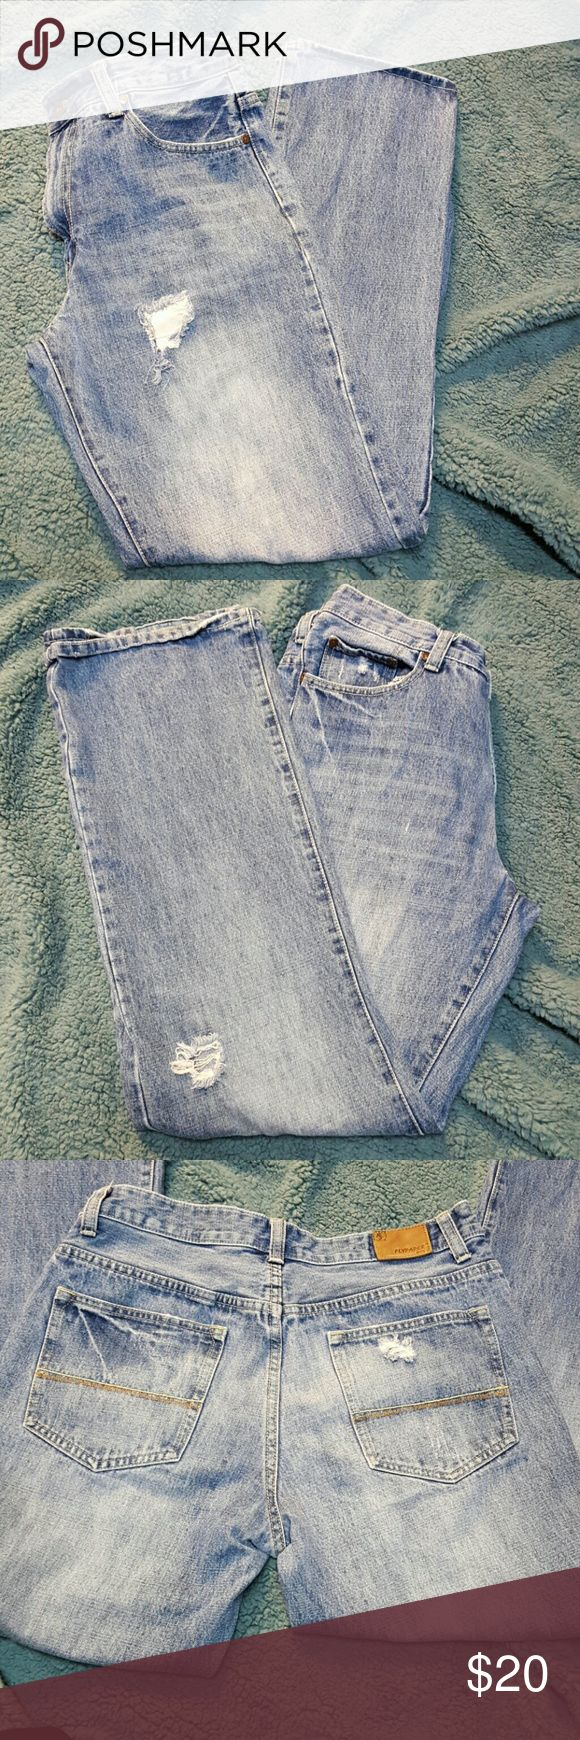 Men's Flypaper Jeans Trendy denim in excellent condition. Stylish tears are factory created. No stains. W32 x L34 Flypaper  Jeans Straight